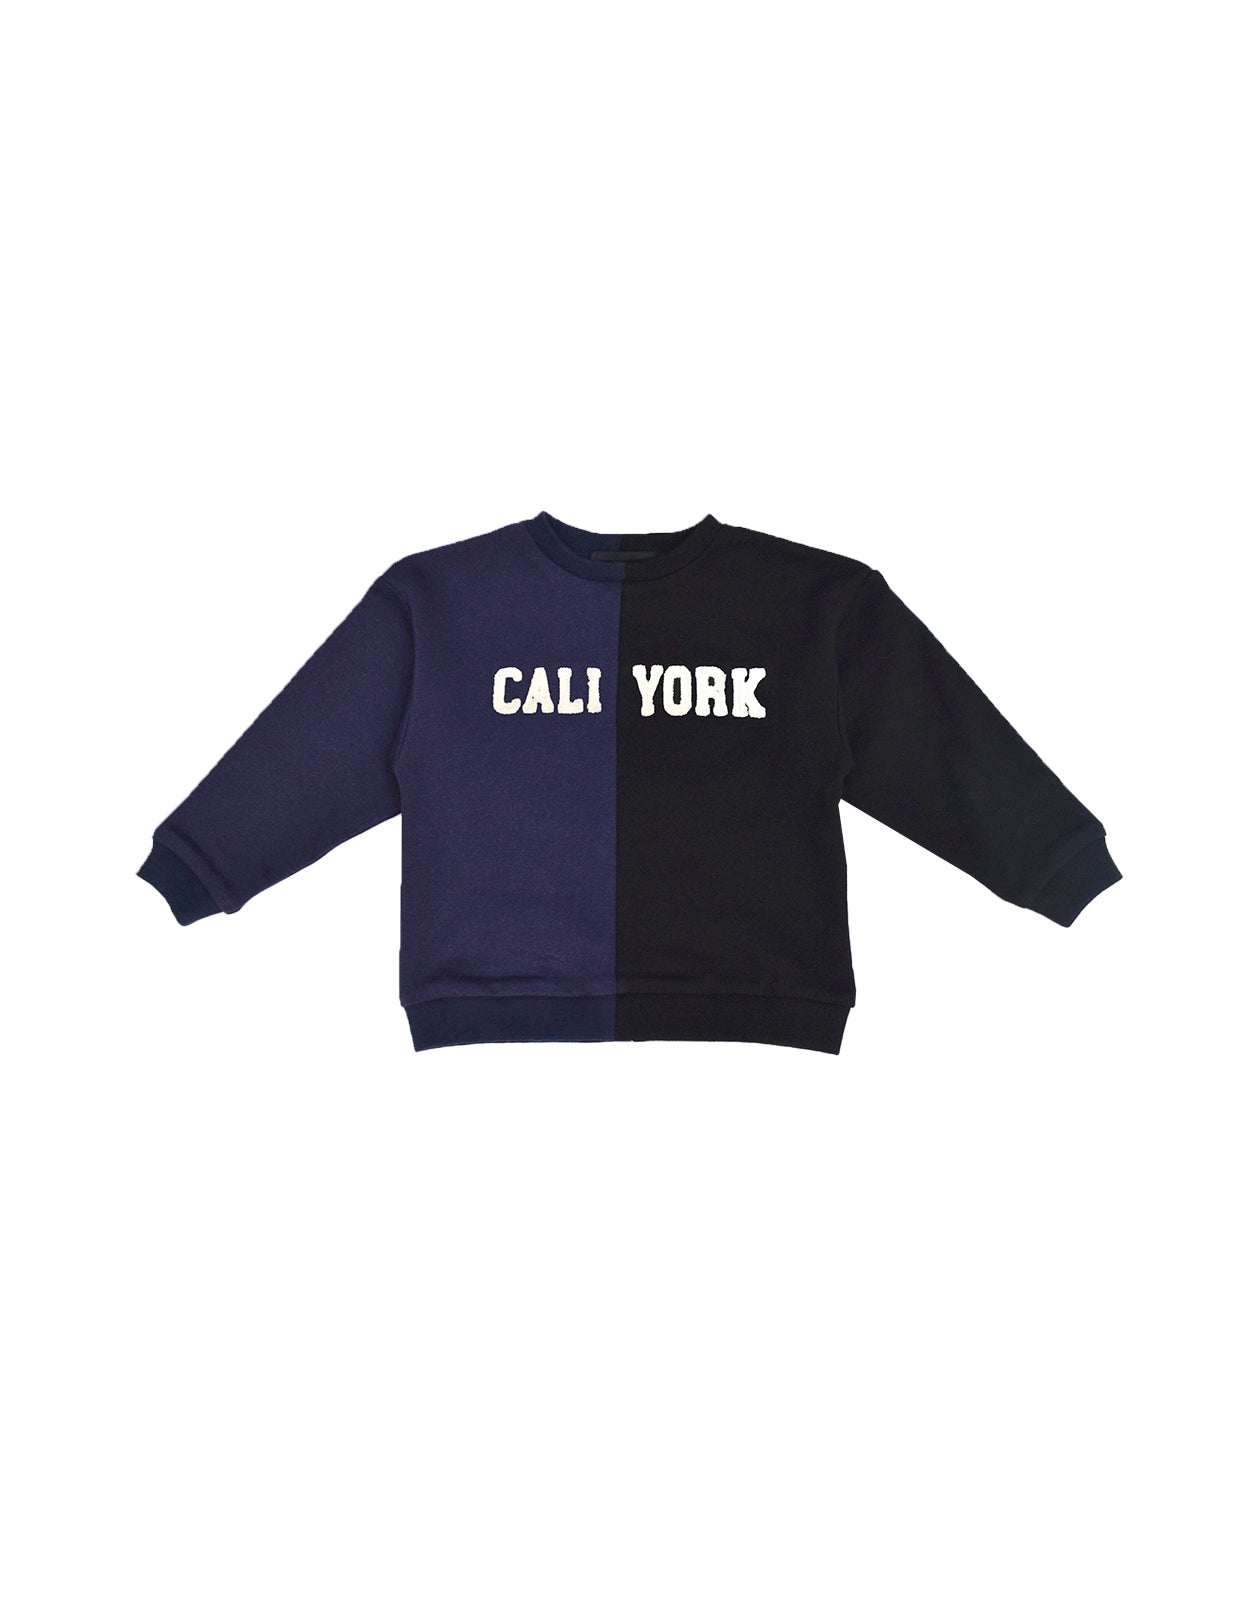 Product image of Kid's CaliYork sweatshirt in half navy, half black.